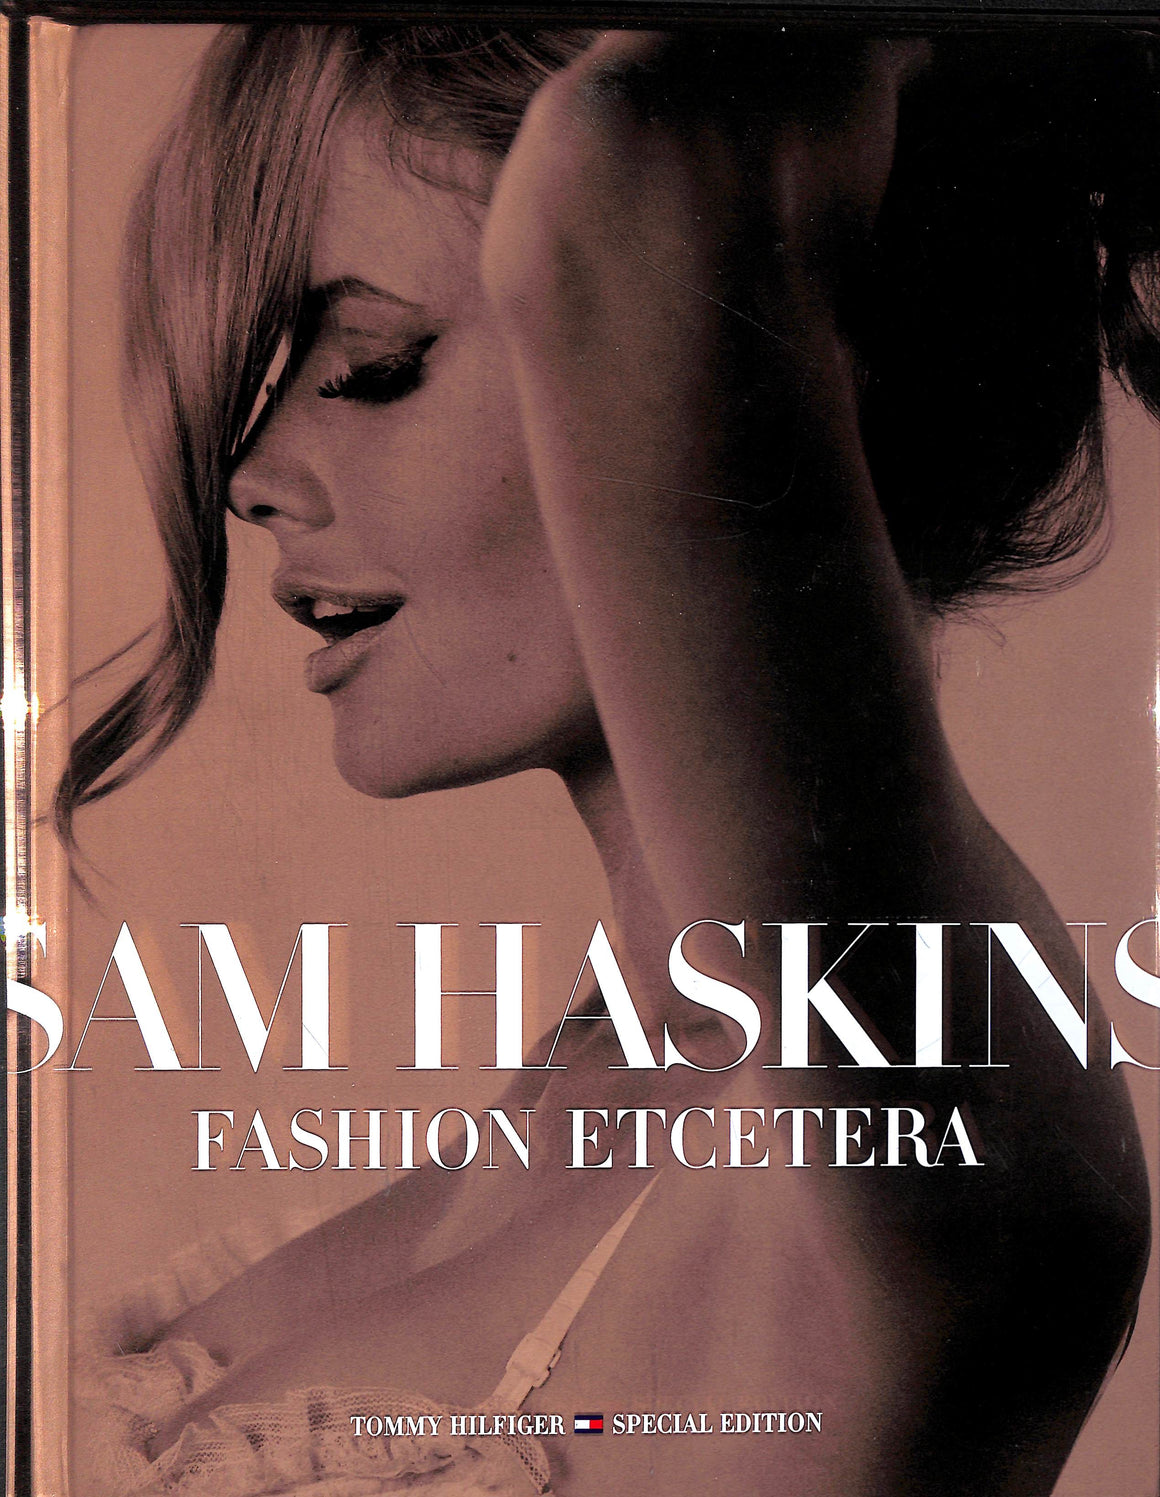 """Sam Haskins Fashion Etcetera..."" Tommy Hilfiger Special Edition 2009"